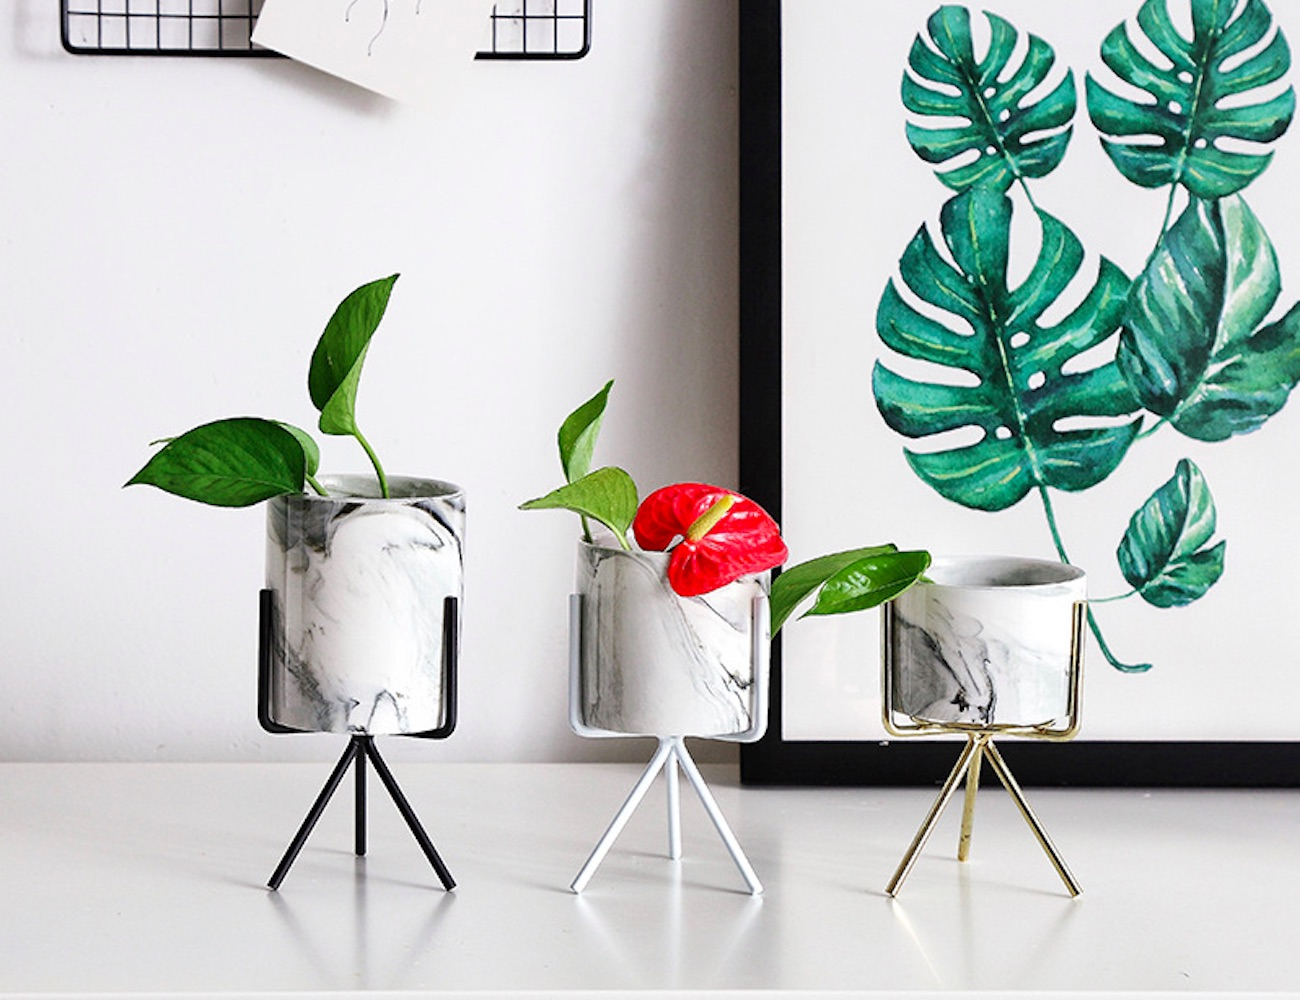 Minimalist Marbled Ceramic Flower Pot gives a pop of style to your plants